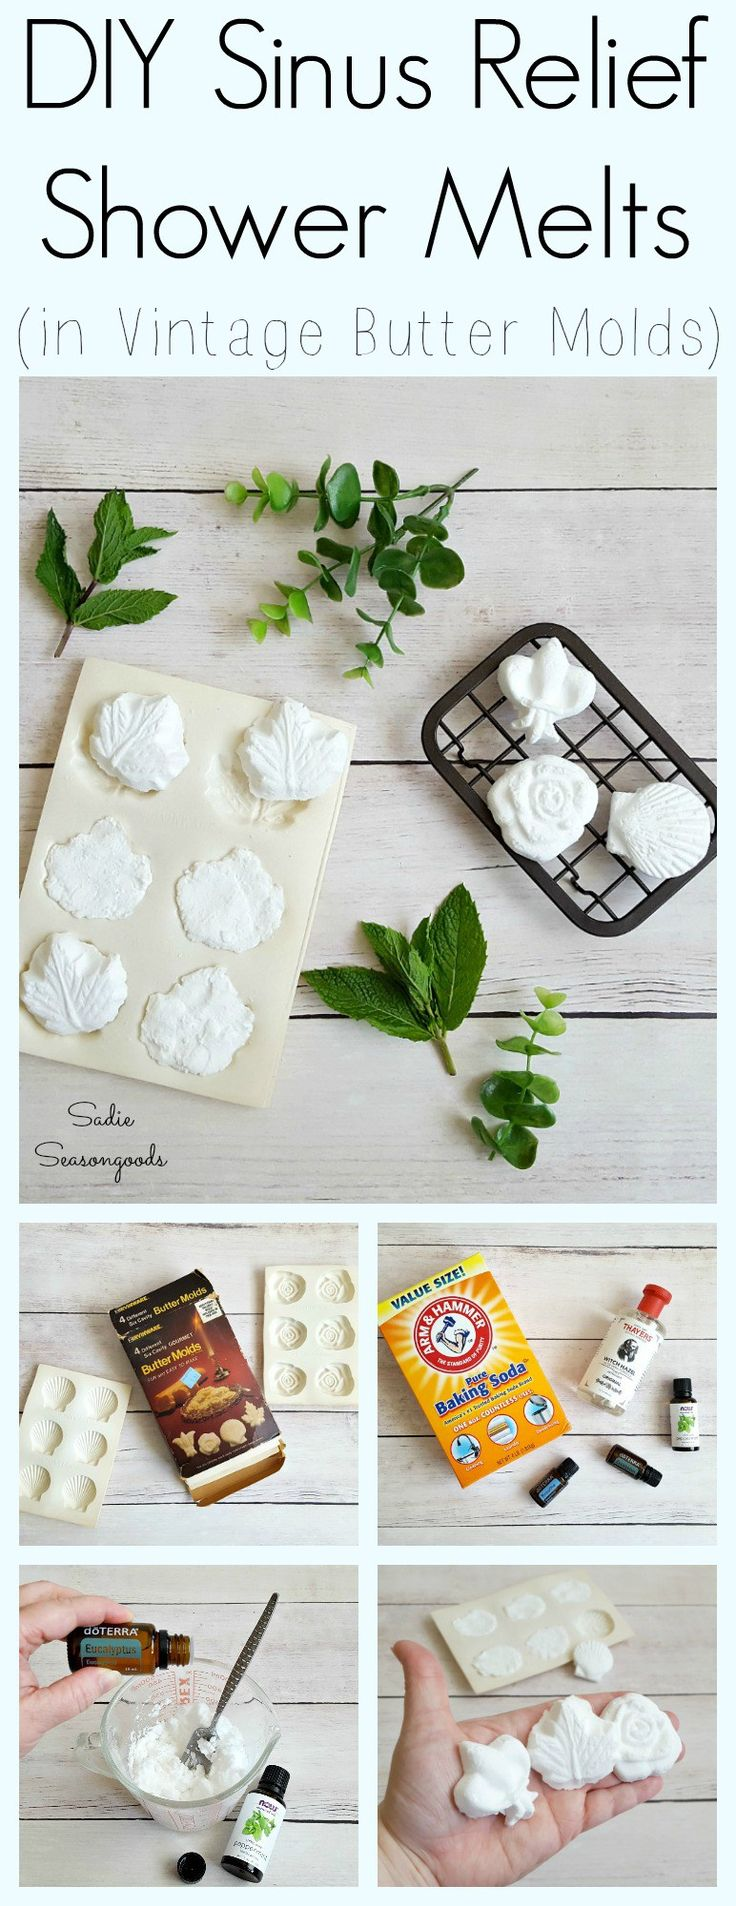 """Repurposing old food molds found at the thrift store (candy, chocolate, or in my case, butter molds) doesn't scream """"Make something to eat!"""". But they are positively PERFECT for upcycling as molds for bath and body products. I made all-natural decongestant shower melts using baking soda, witch hazel, and essential oils...but these would be ideal for making bath bombs and bath fizzies, too. Great craft idea by Sadie Seasongoods / www.sadieseasongoods.com"""